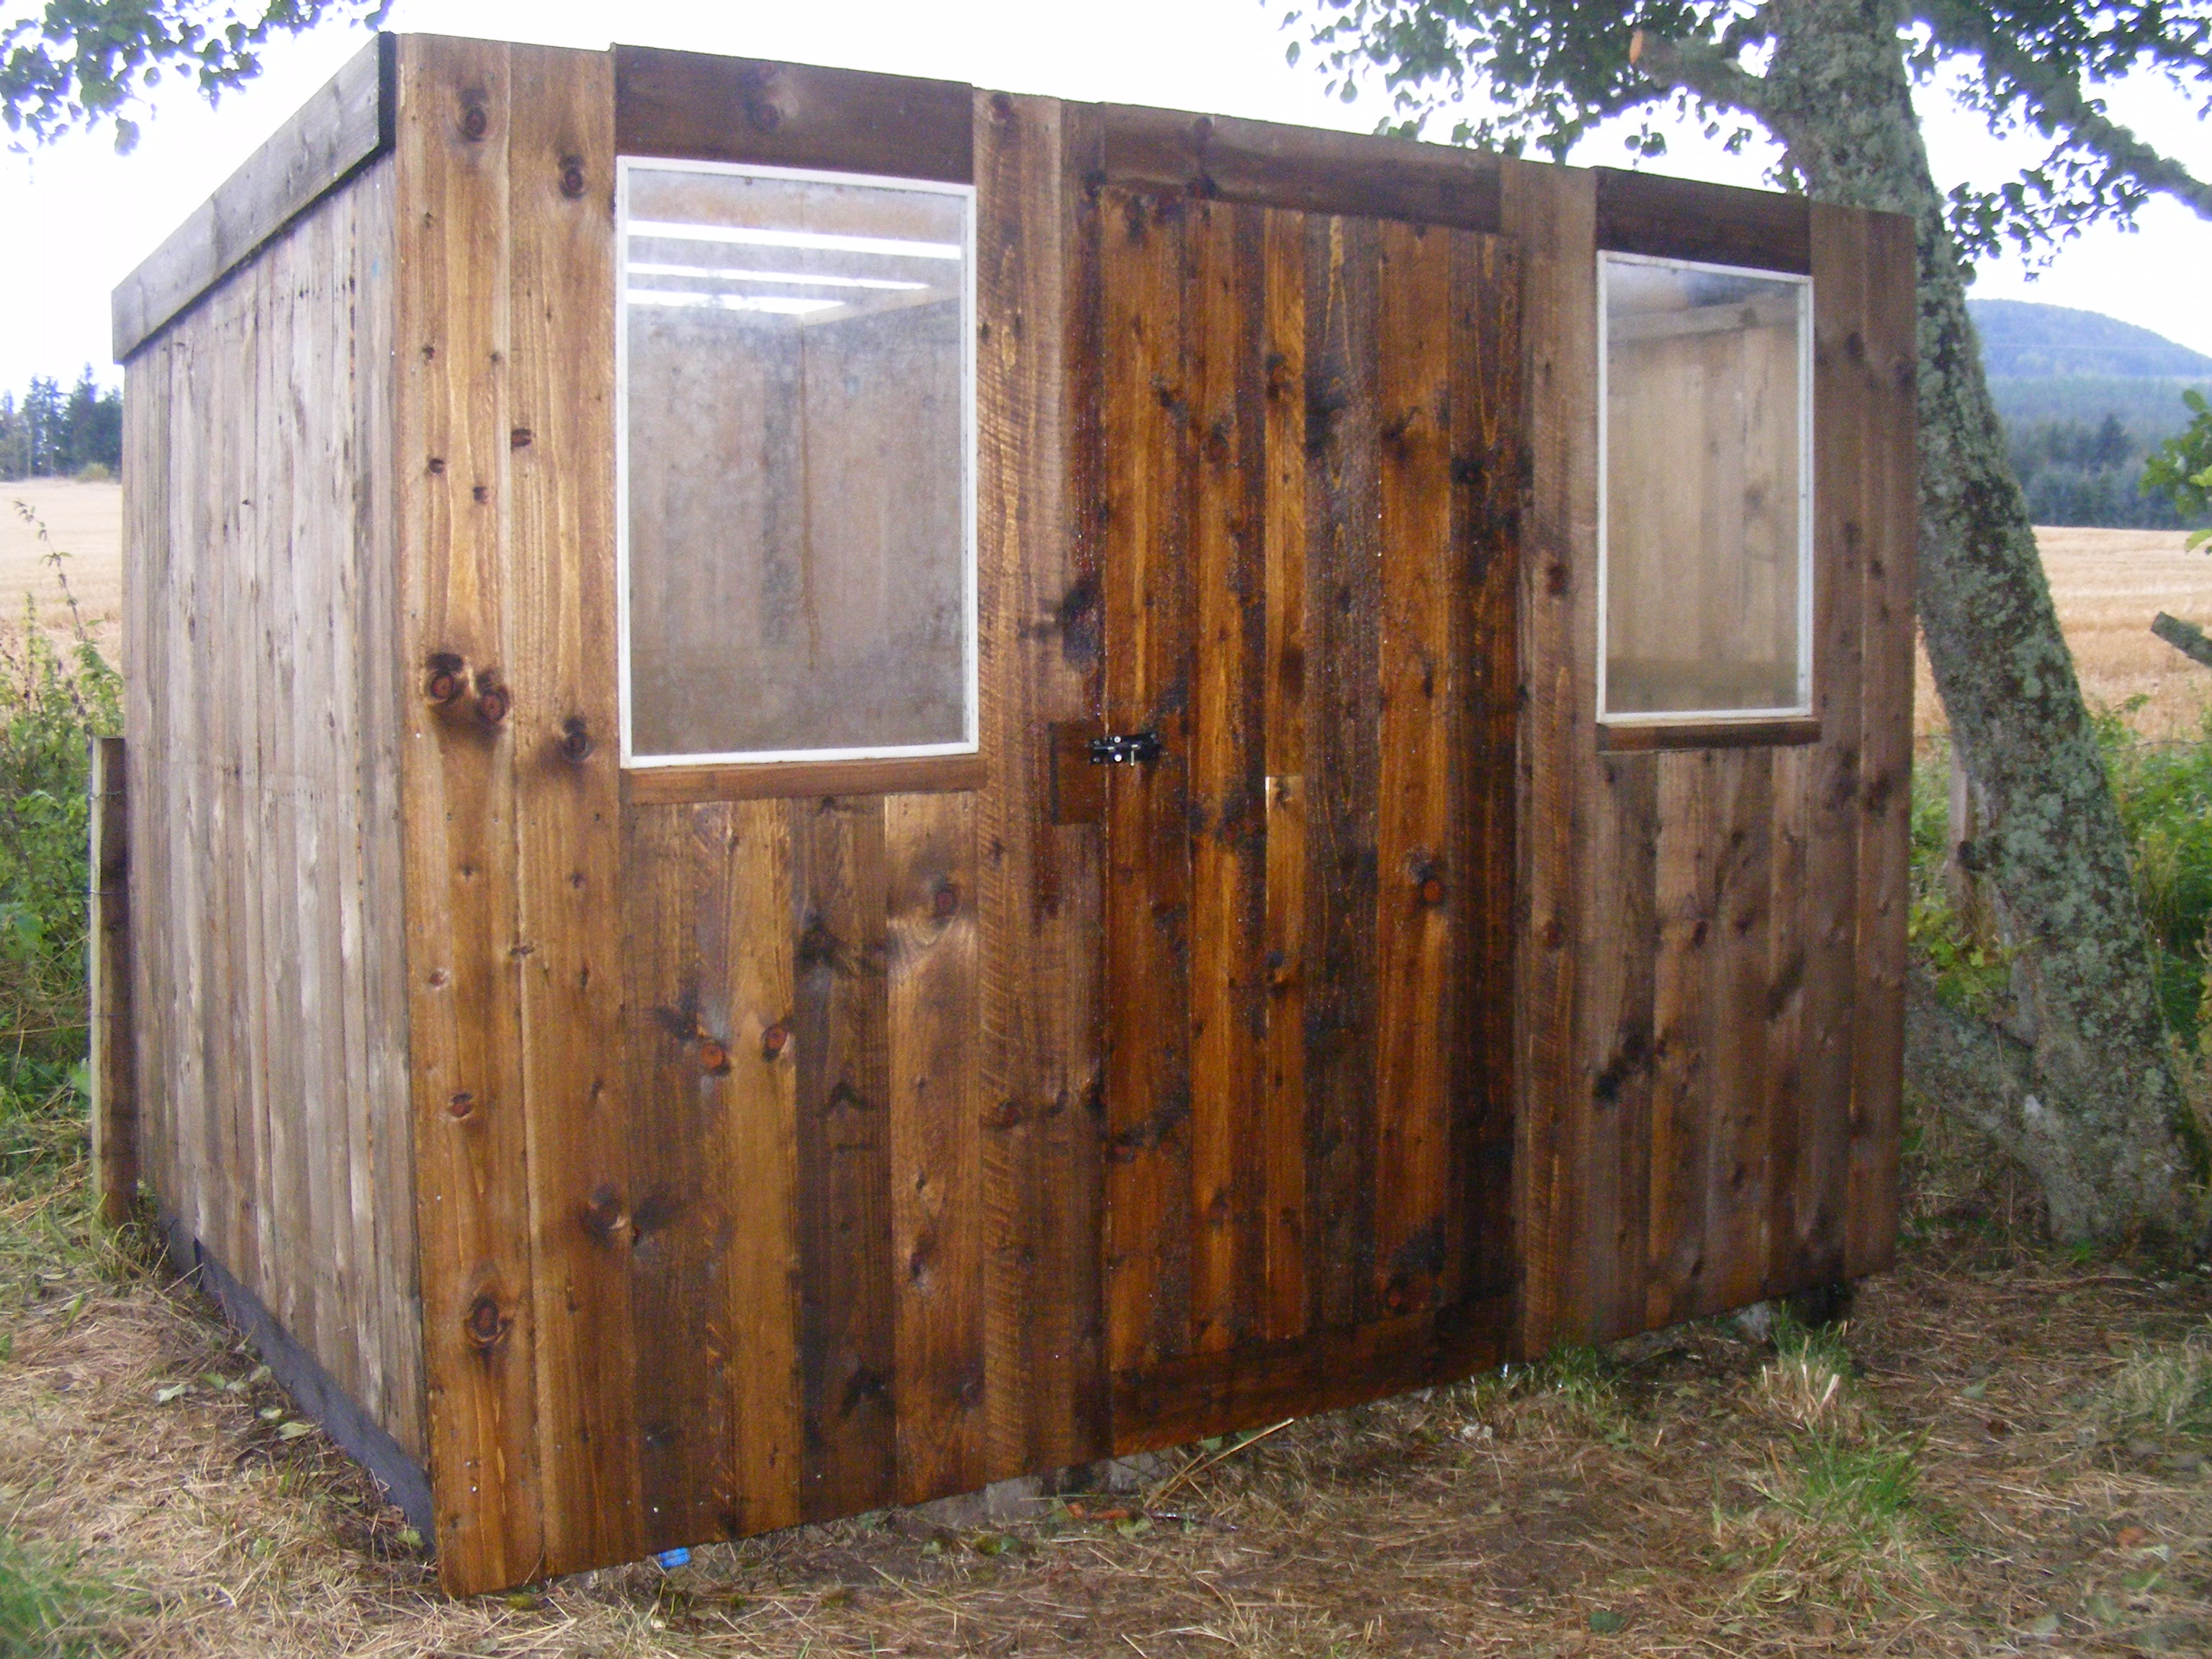 I M Going To Make A Shed Out Of Pallets General Self Build Diy Discussion Buildhub Org Uk